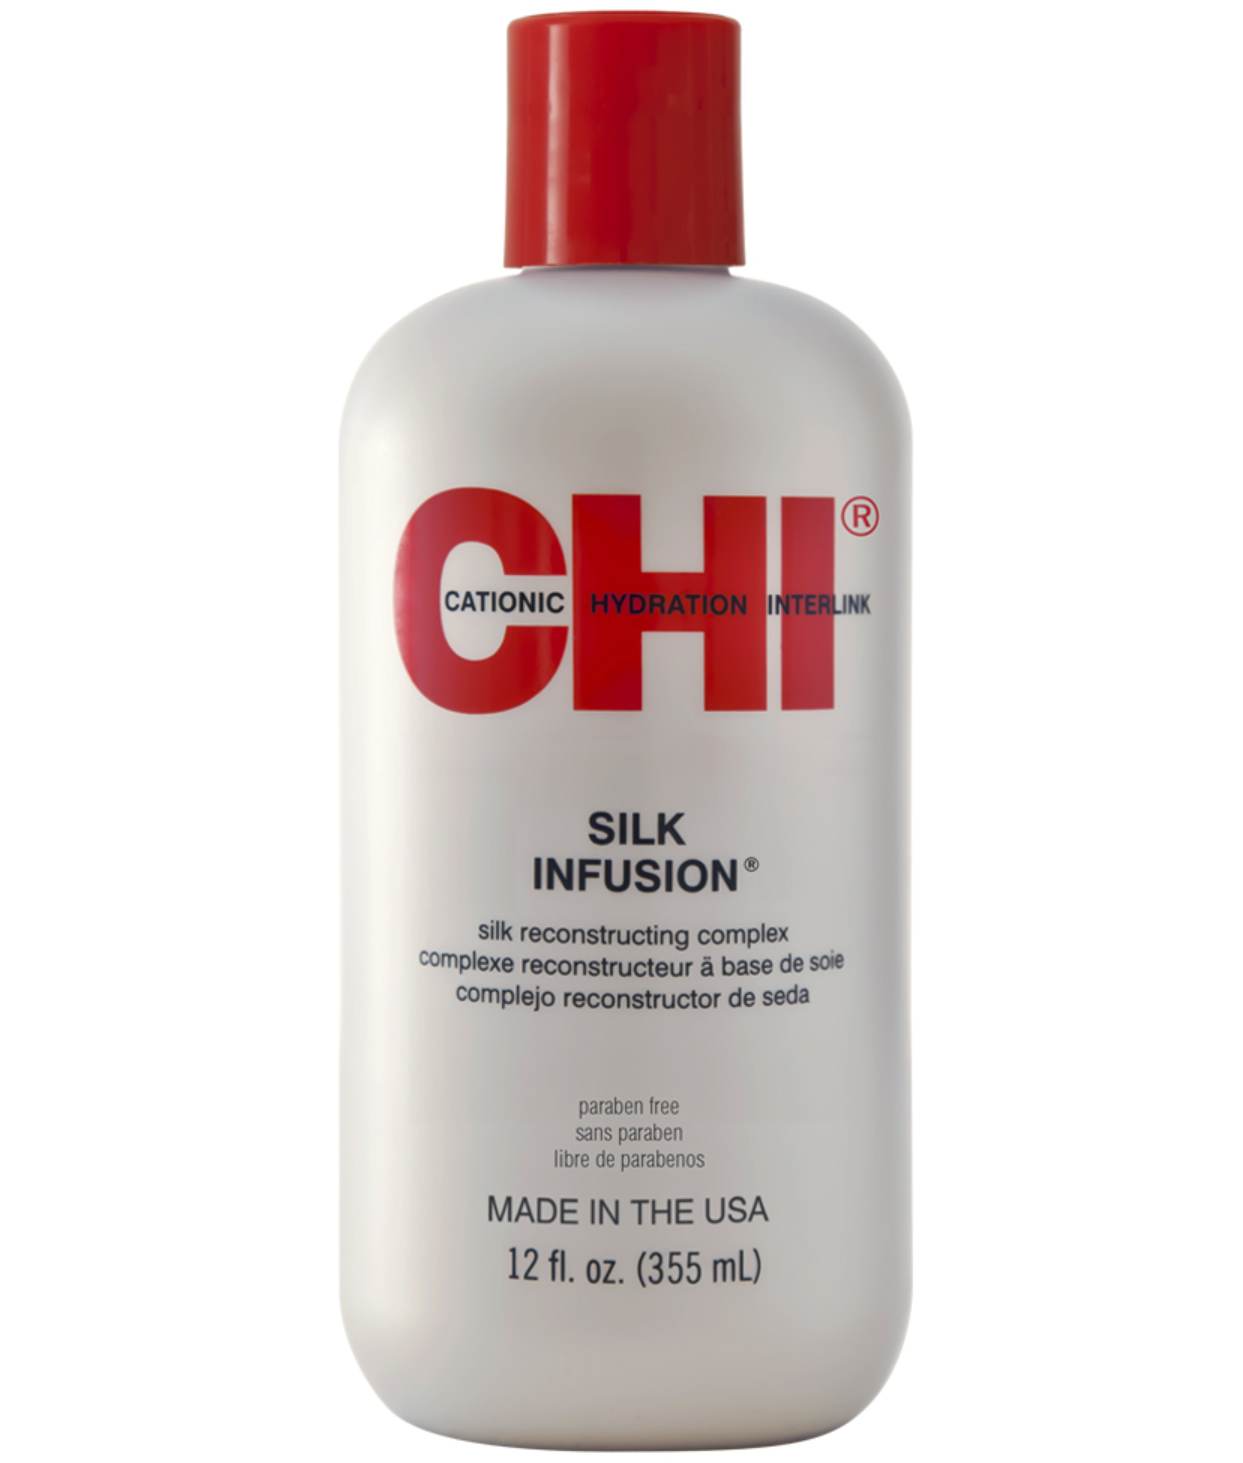 CHI Silk Infusion, 12 fl. oz.